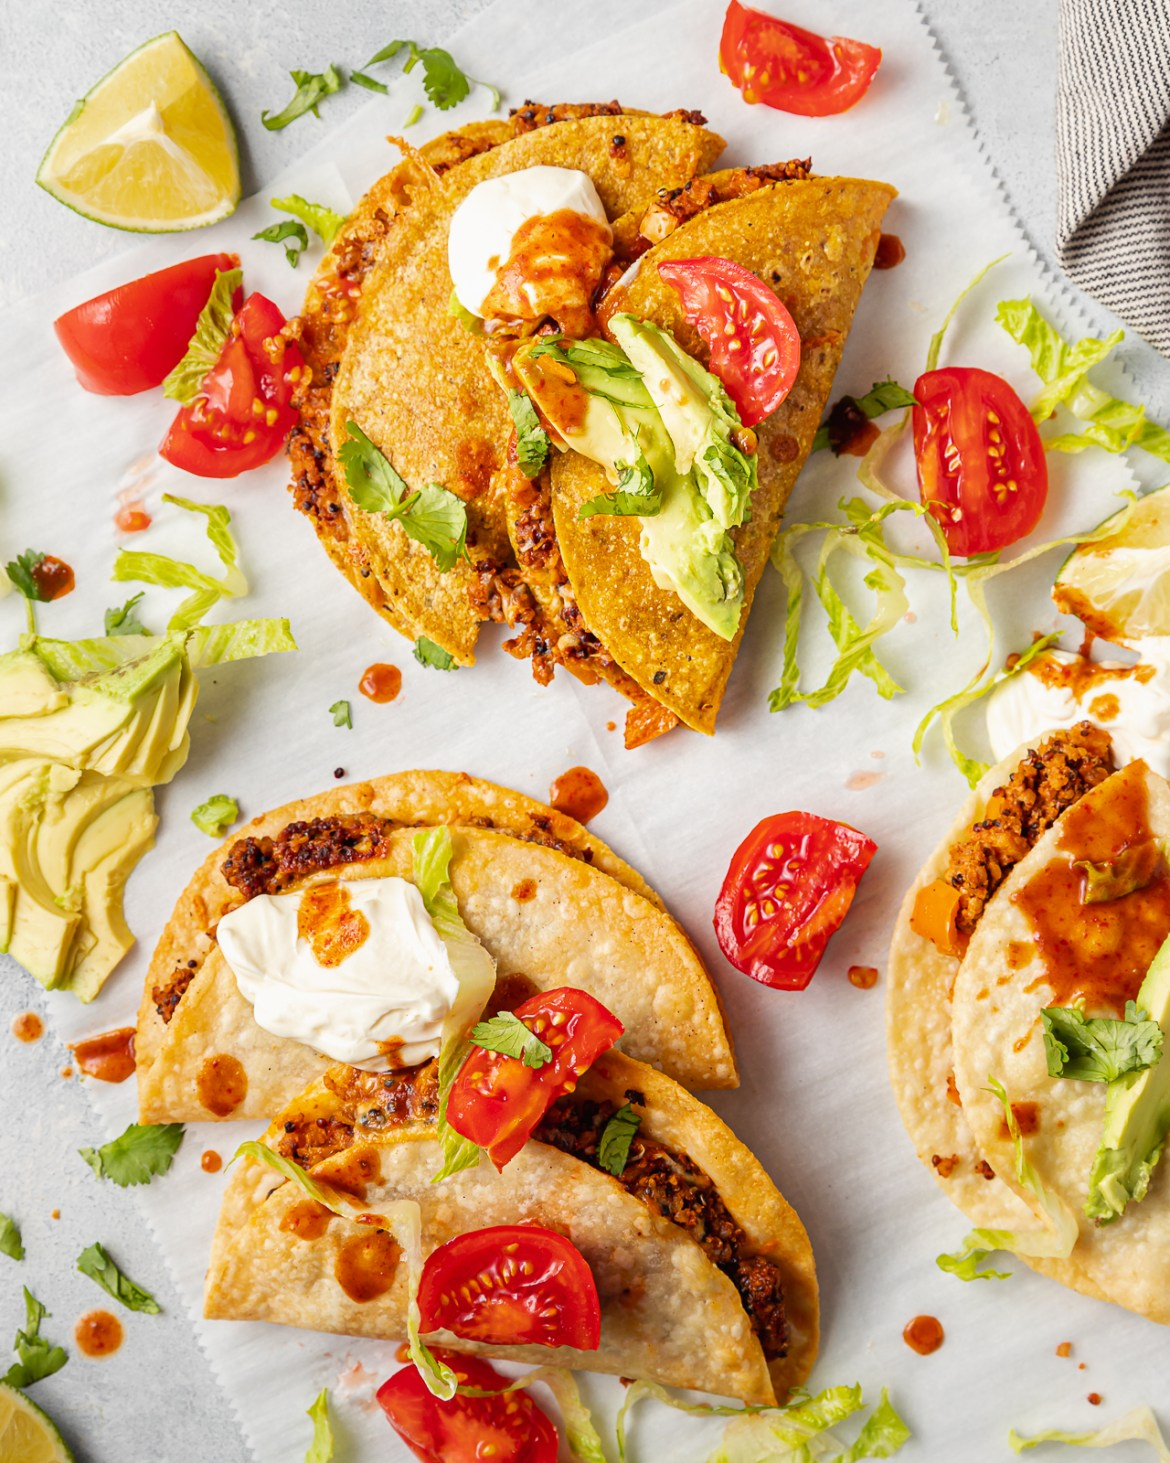 Quick and Easy Plant-based Tacos